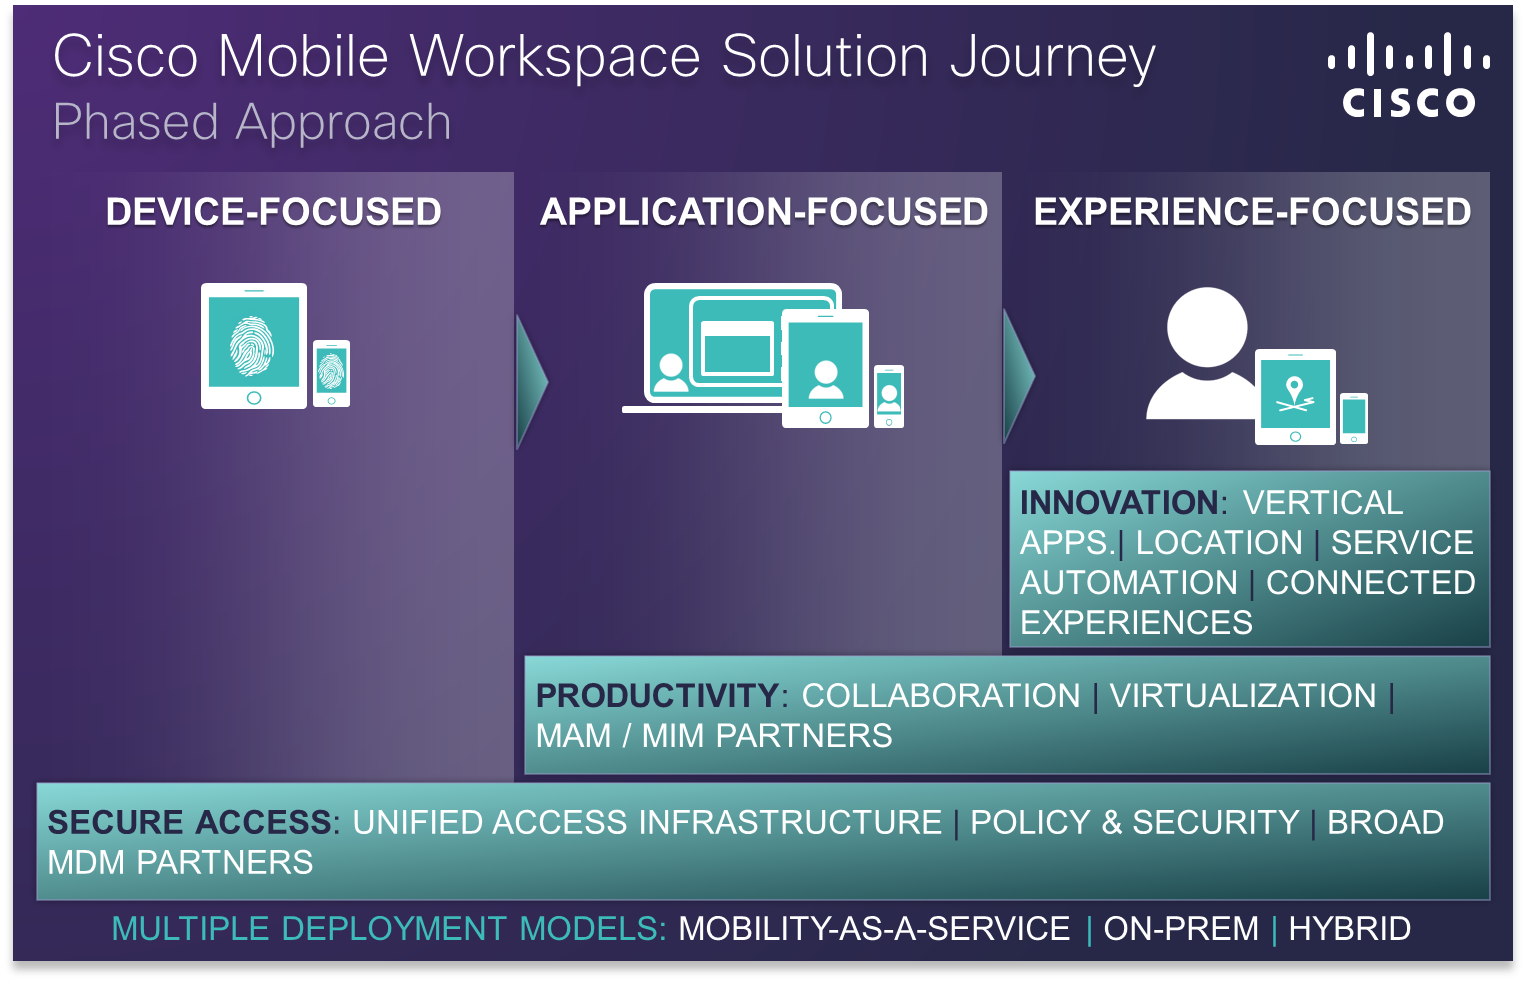 Mobile Workspace Solution Journey